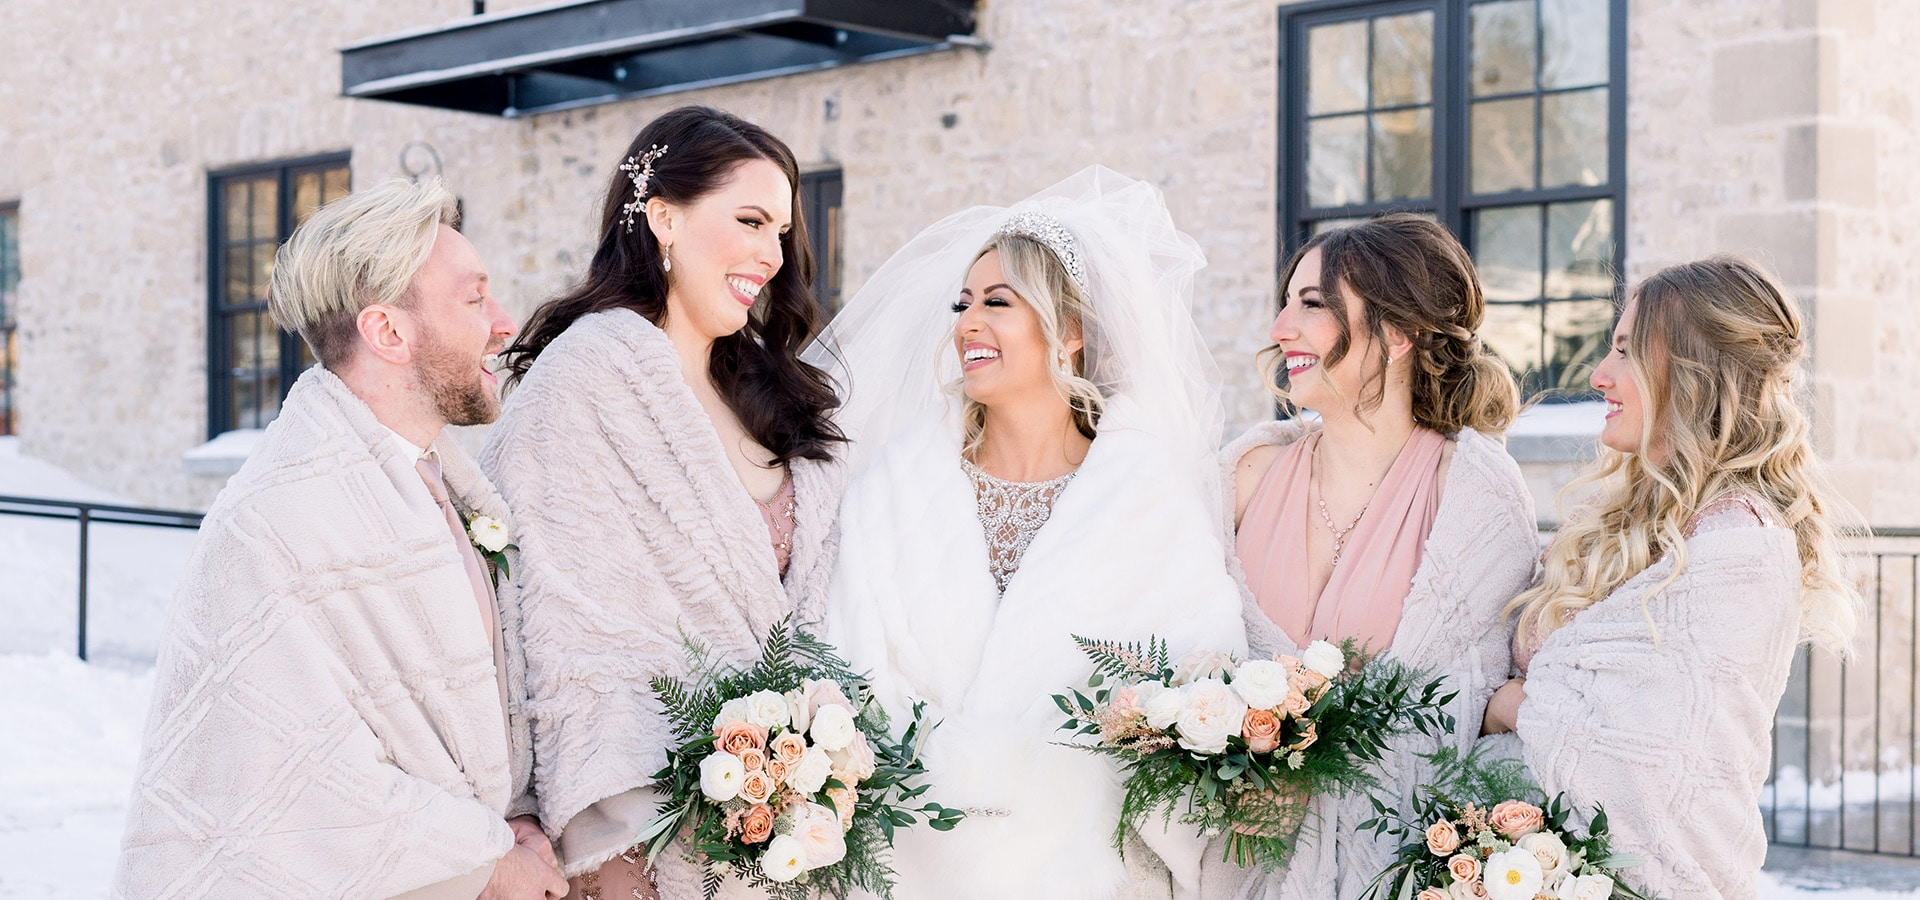 Hero image for 8 Ways Make Your Winter Wedding Awesome